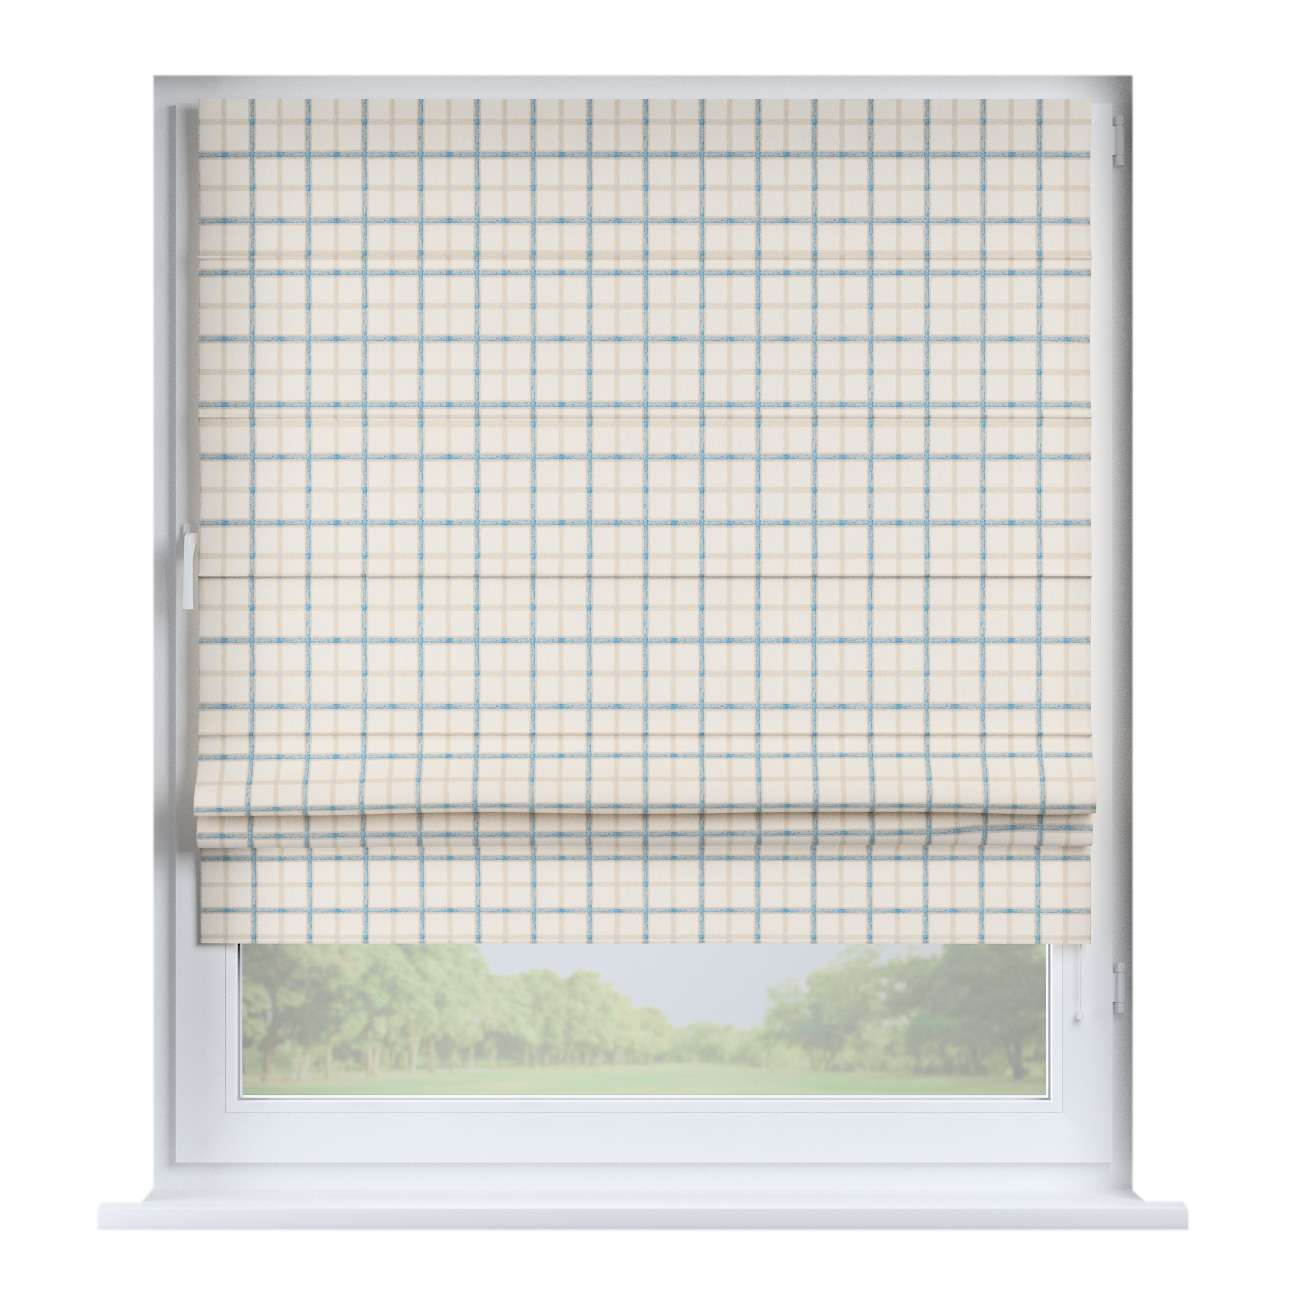 Padva roman blind  80 x 170 cm (31.5 x 67 inch) in collection Avinon, fabric: 131-66